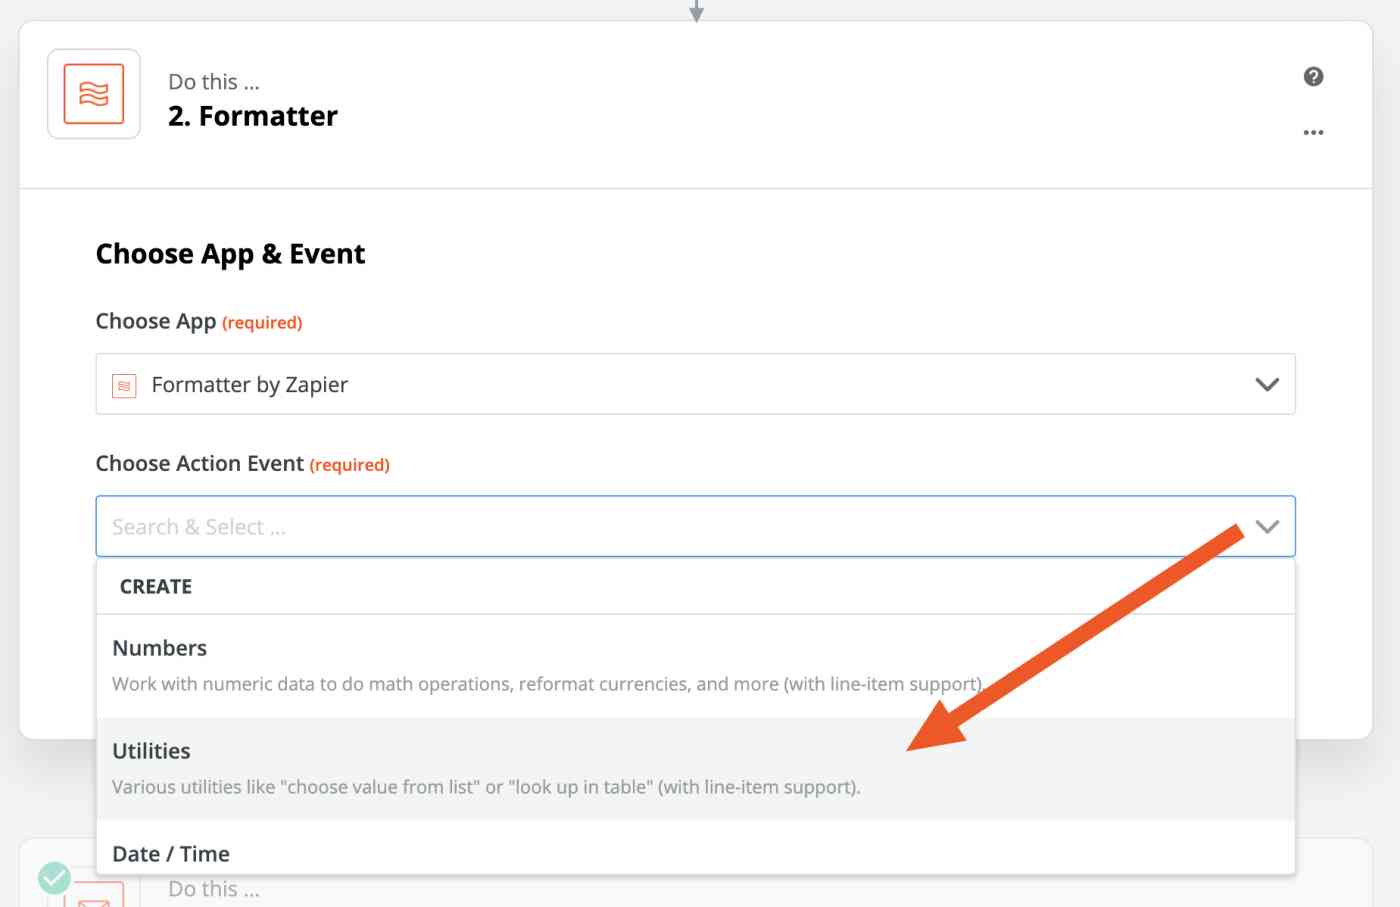 Arrow pointing to Lookup Table in the Choose Action Event menu.